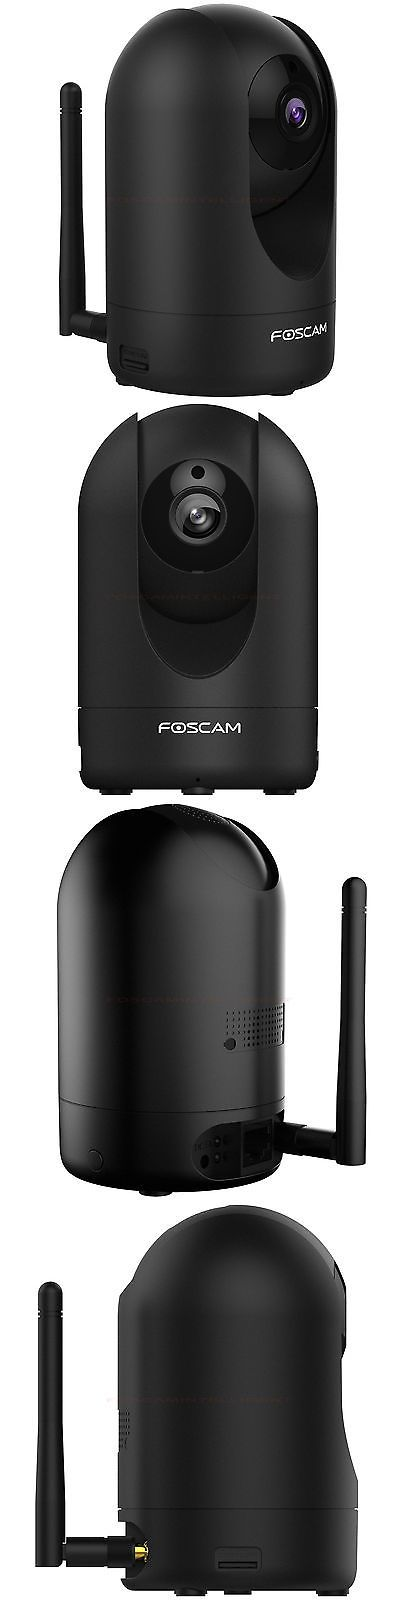 Security Cameras: Foscam R2b 2.0Mp 1080P Pan Tilt Wireless Home Surveillance Security Ip Cameras -> BUY IT NOW ONLY: $79.99 on eBay!